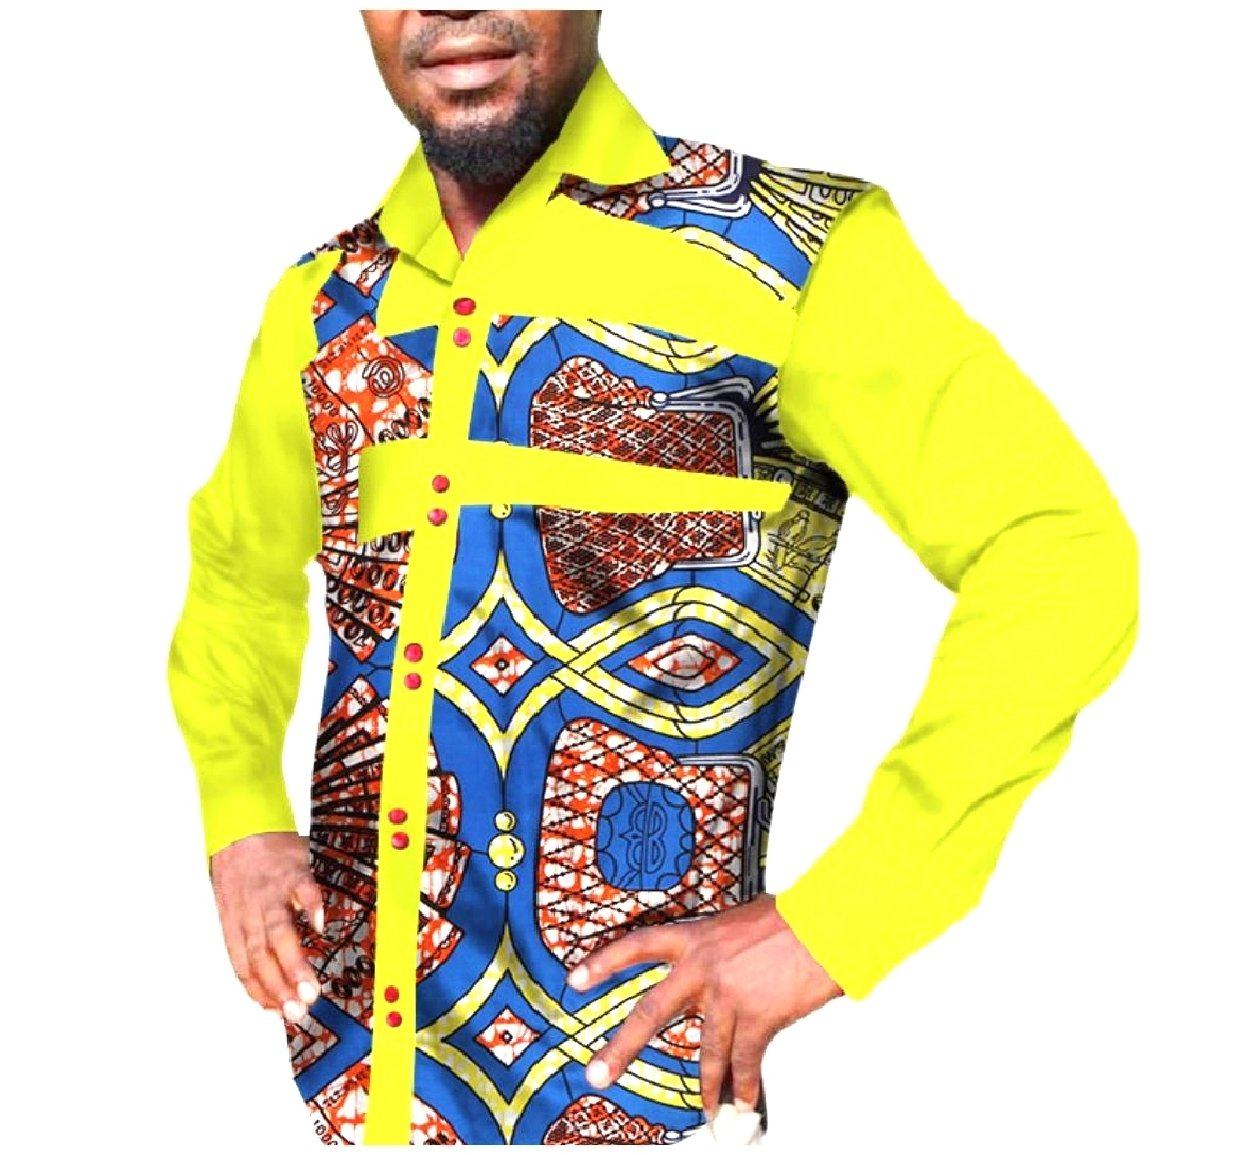 Tootless Men's Fine Cotton Patchwork Dashiki African Printed Shirt Tops Yellow S